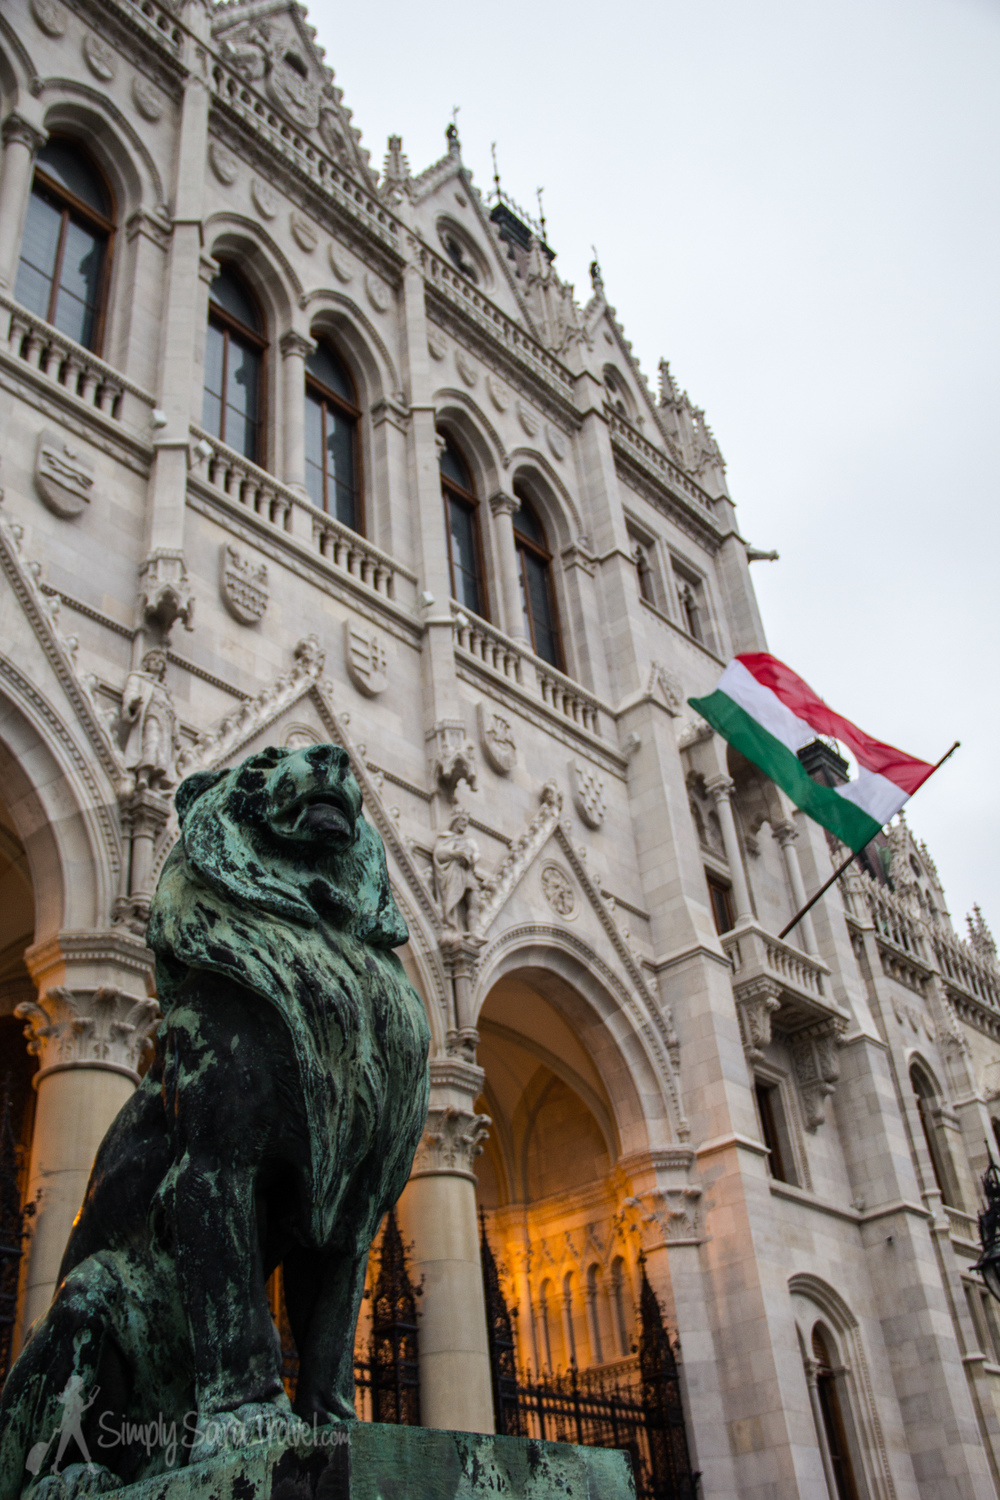 Outside Budapest's Parliament building